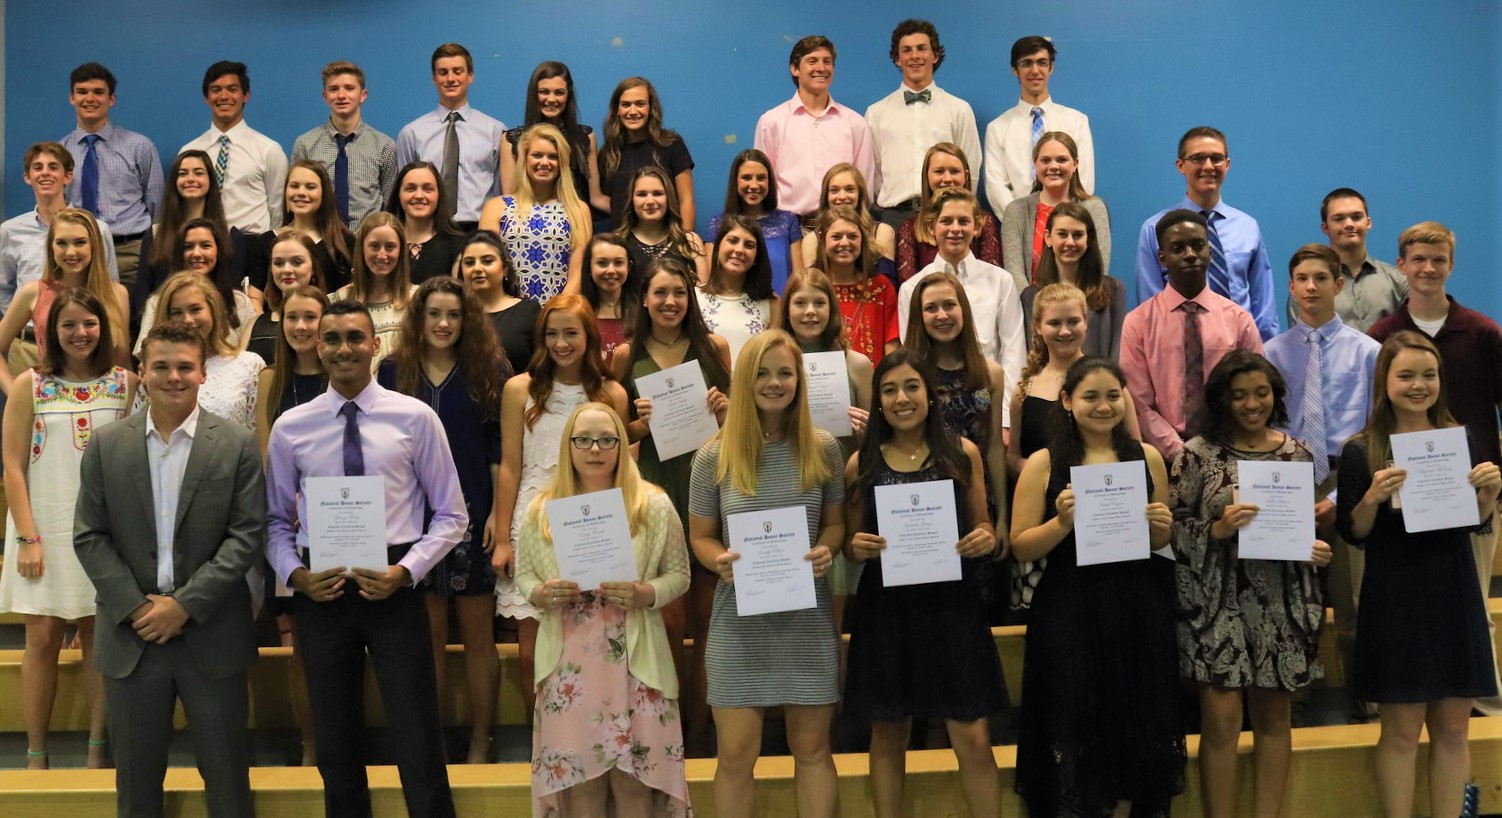 NHS Welcomes New Members